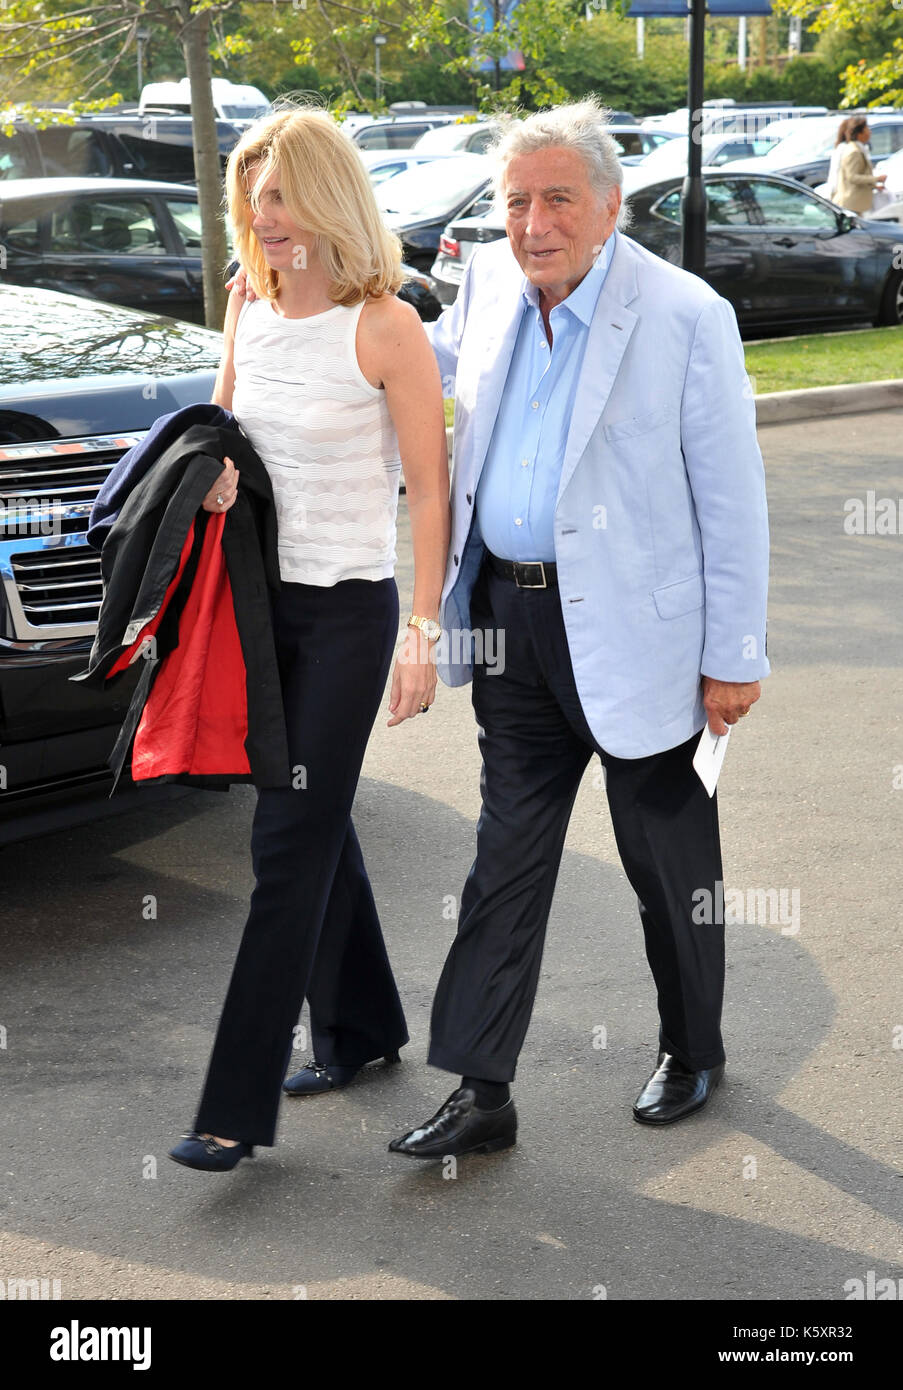 FLUSHING NY- SEPTEMBER 10: Susan Crow and Tony Bennett at the US Open Men's Final Championship match at the USTA Billie Jean King National Tennis Center on September 10, 2017 in Flushing, Queens. Credit: John Palmer/MediaPunch - Stock Image